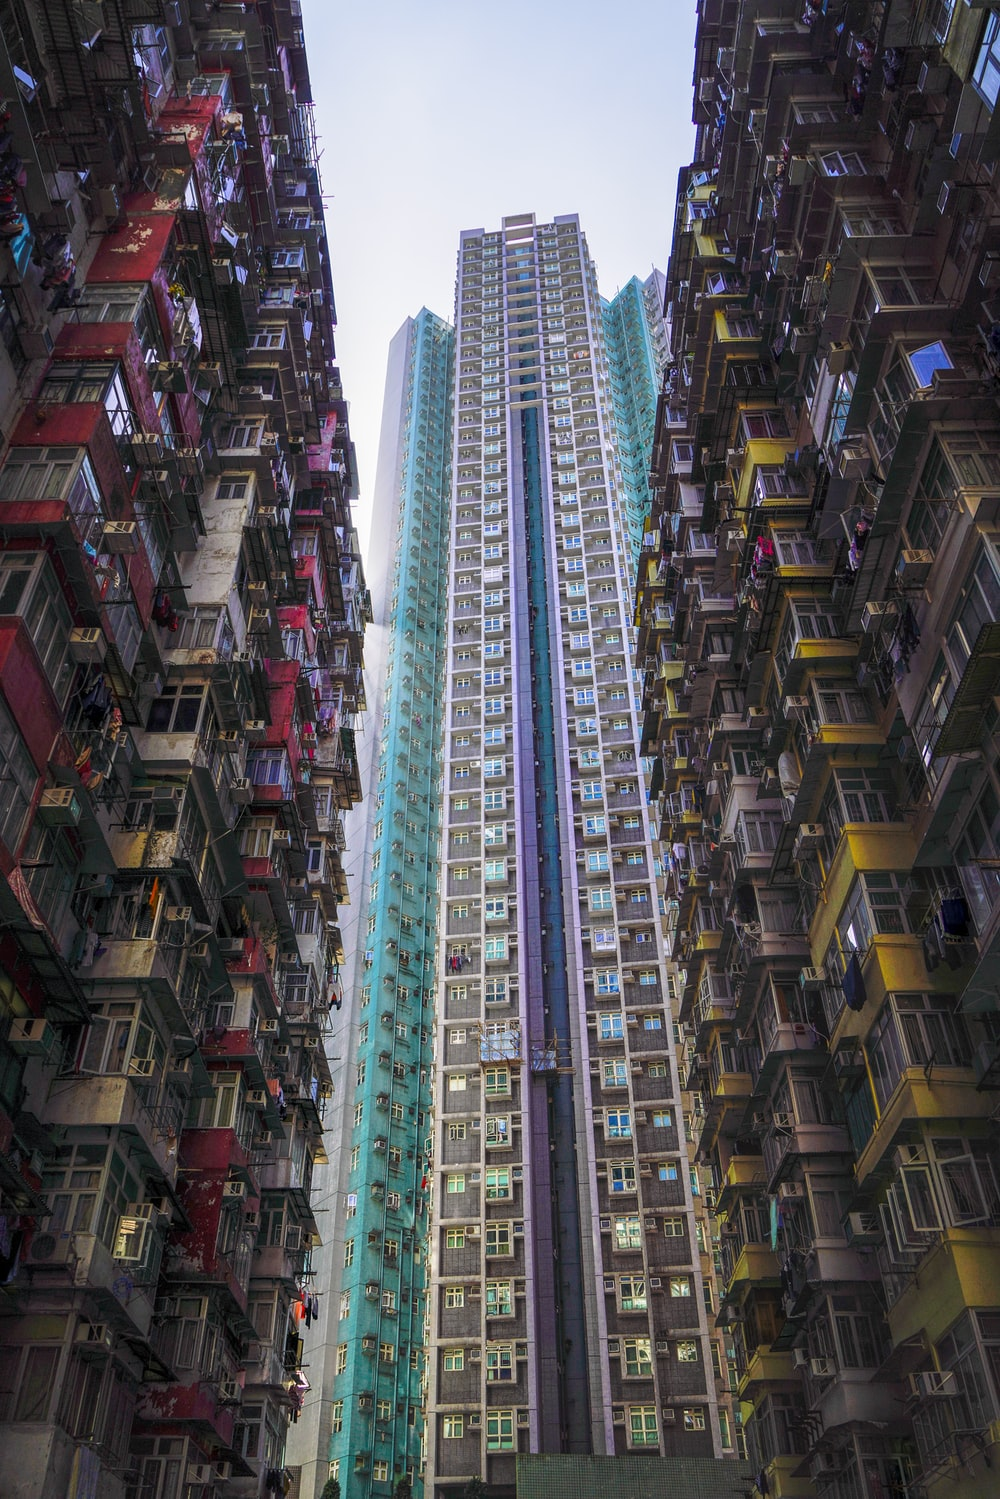 low-angle photograph of high-rise buildings